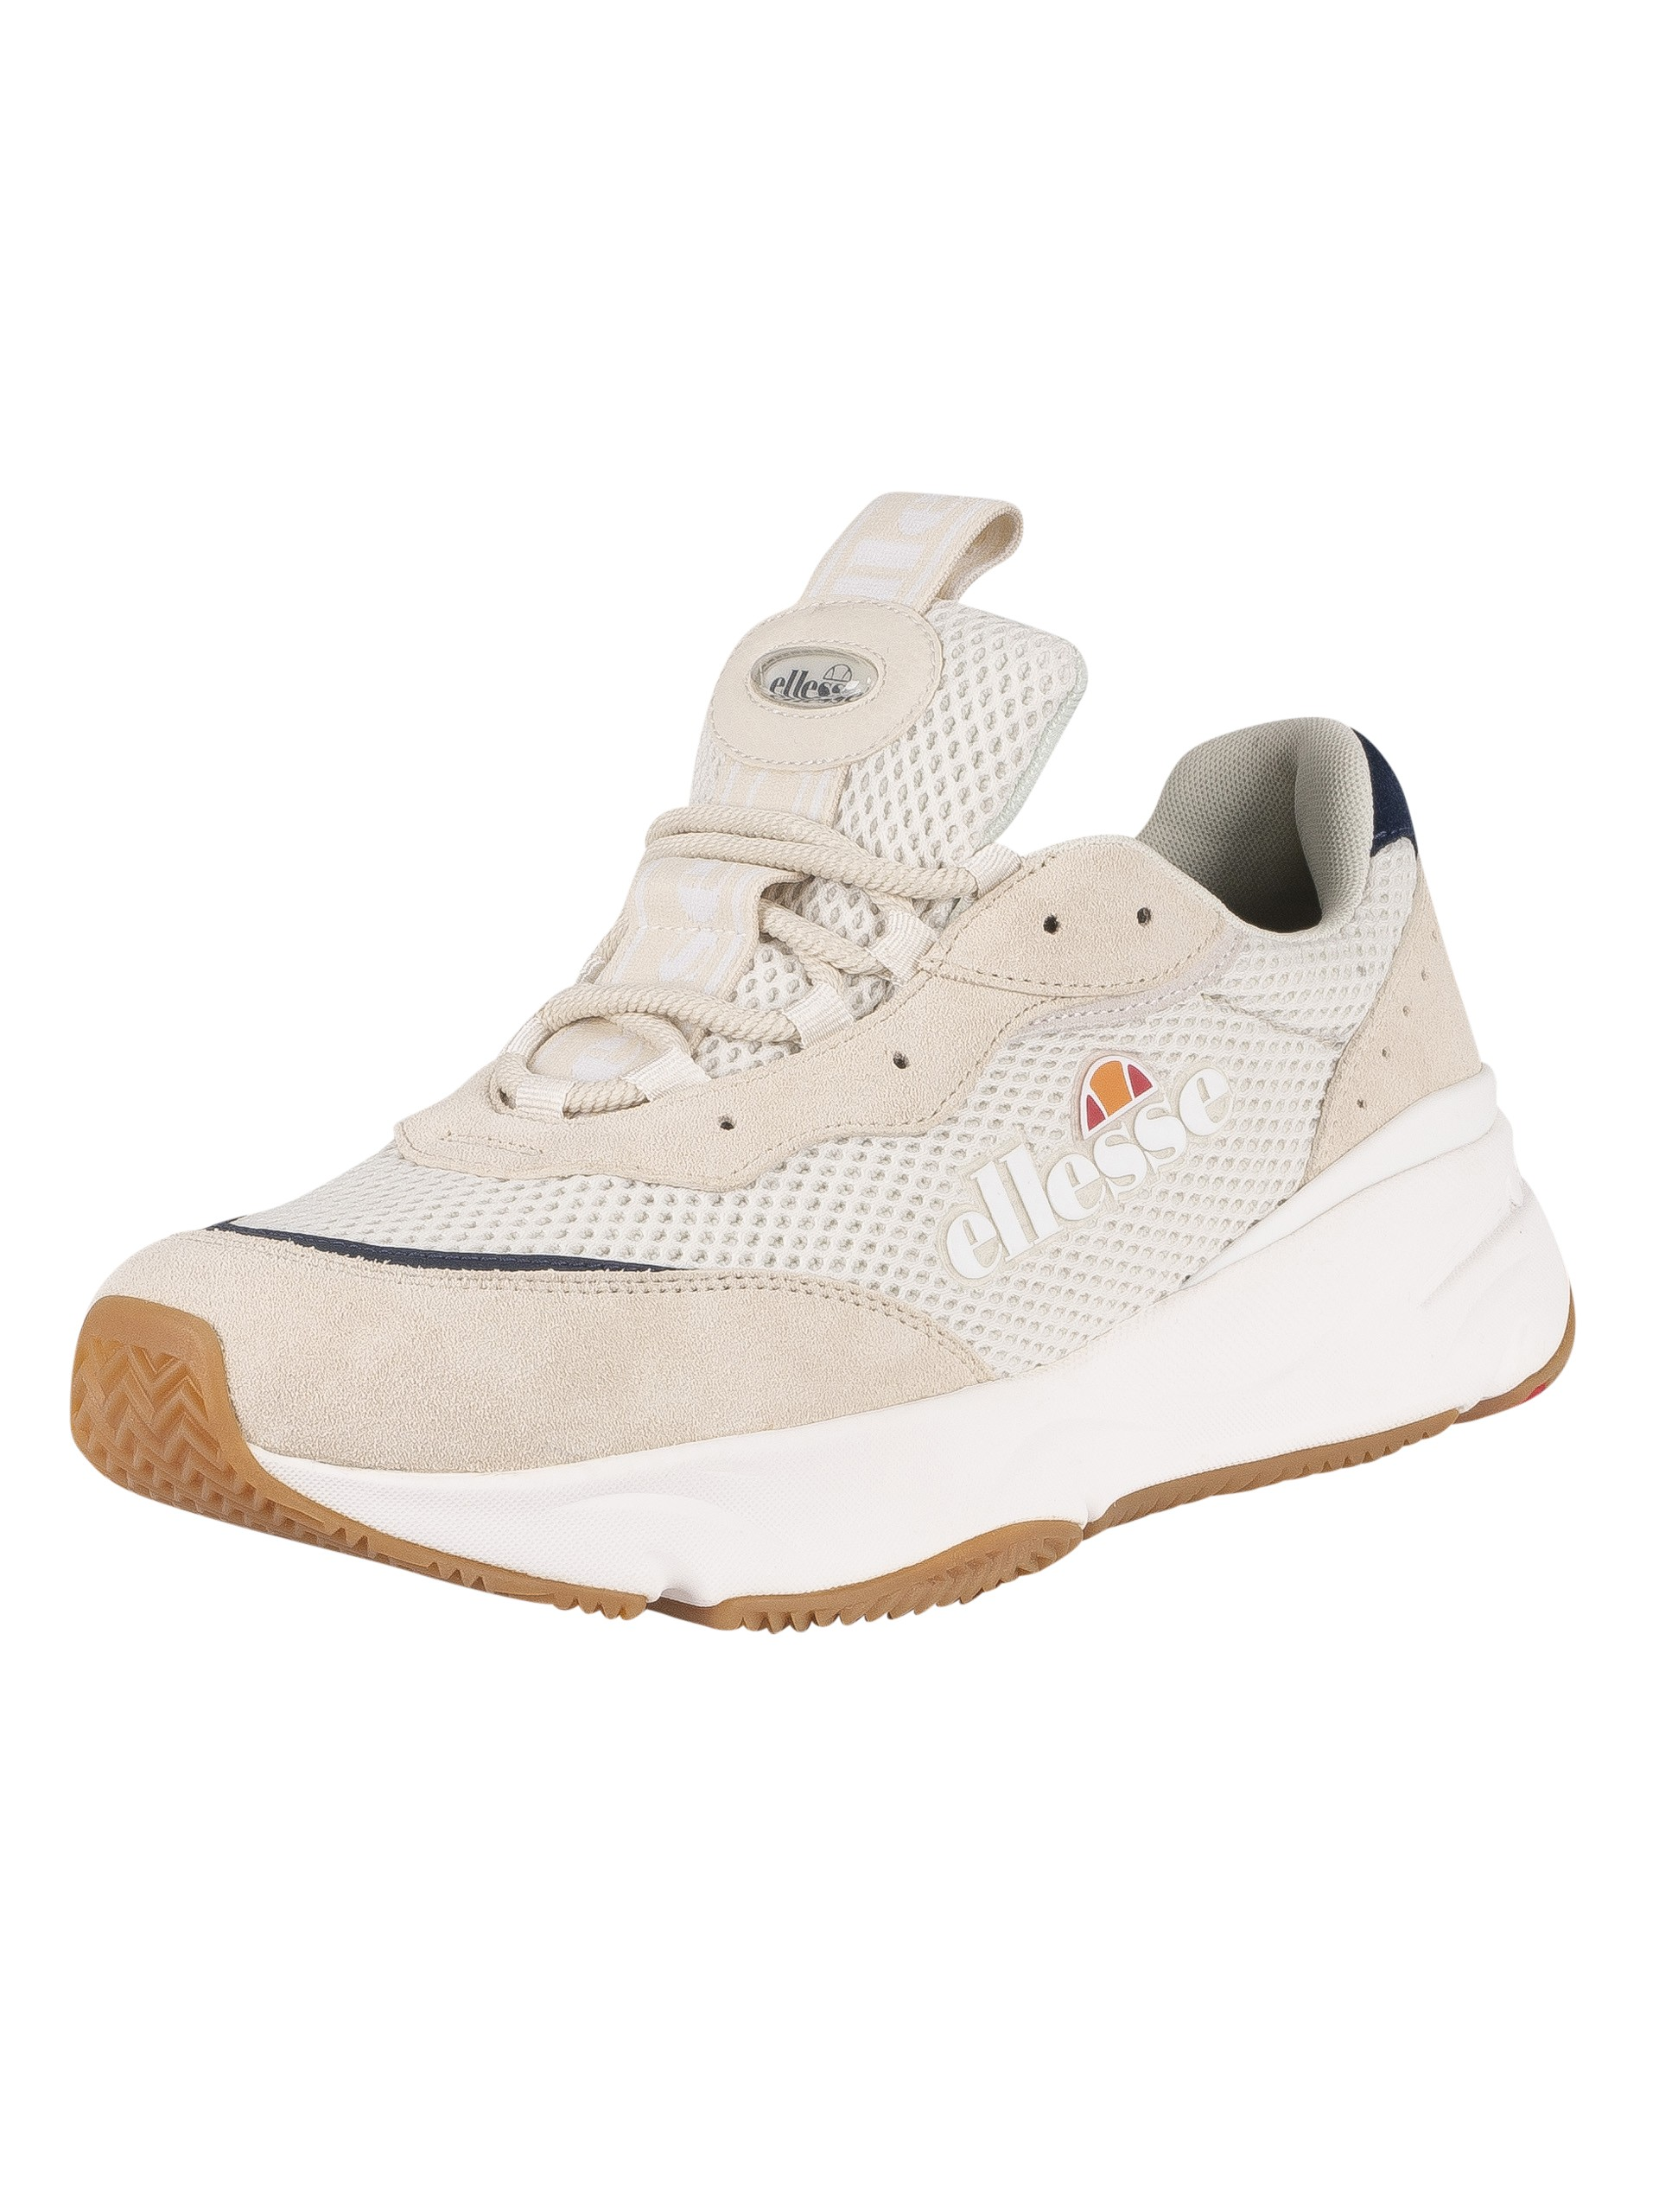 Ellesse Massello Text Trainers - Off White/Dark Blue